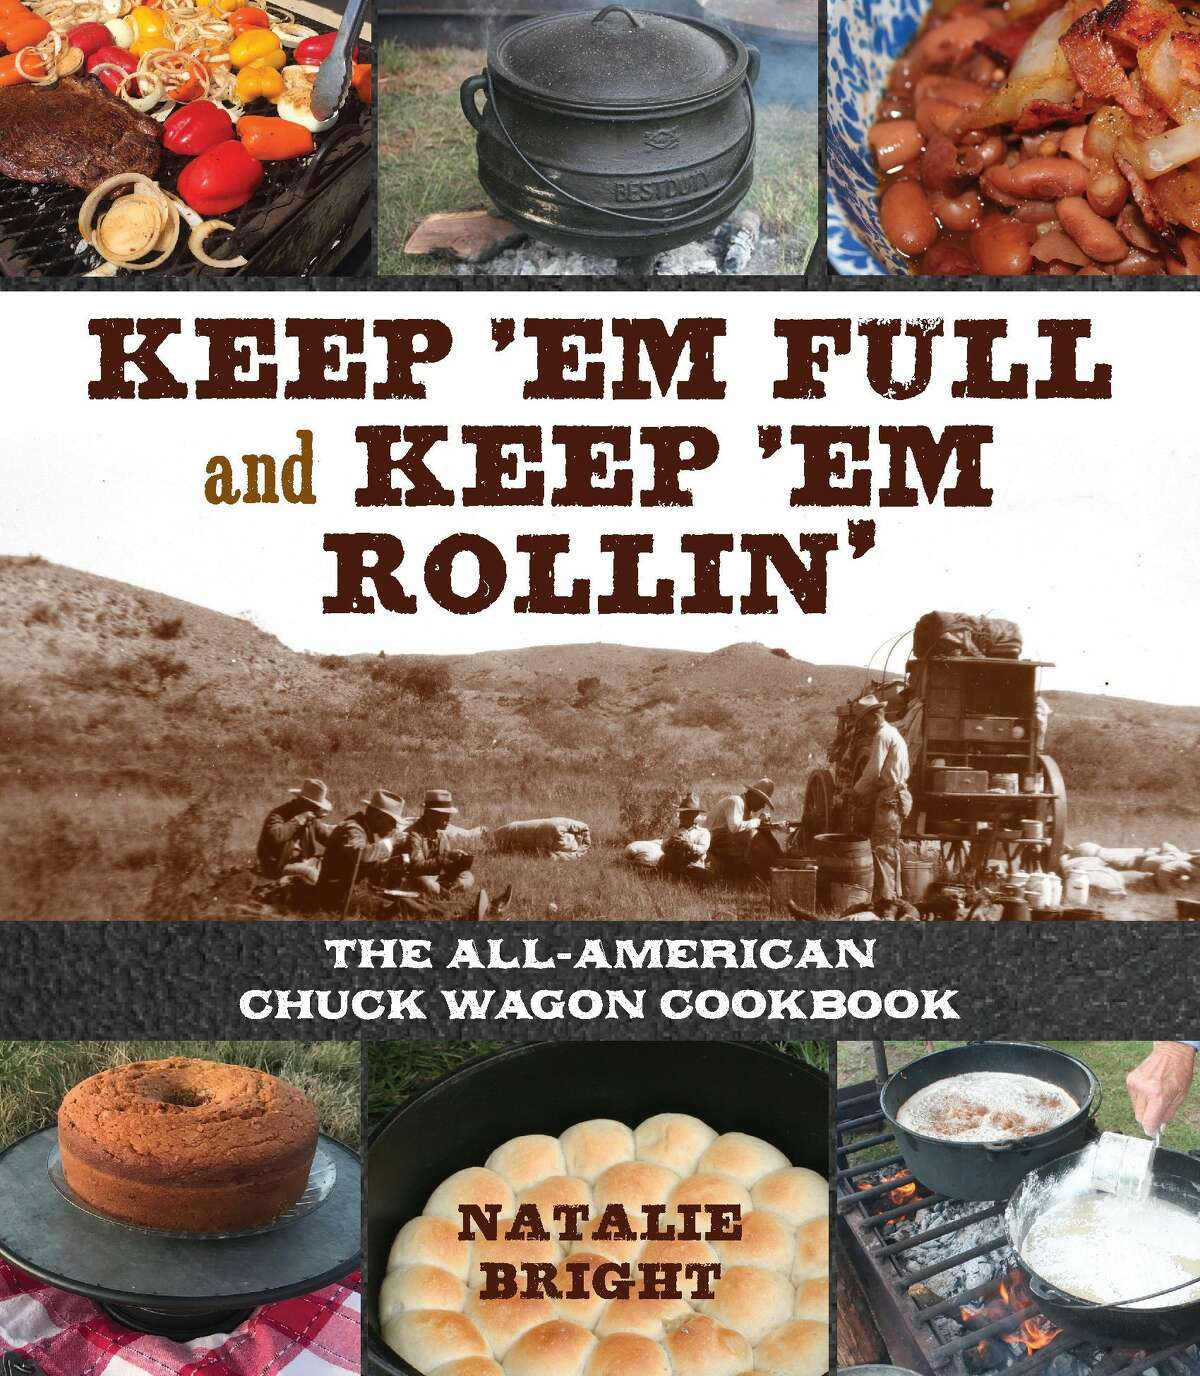 """Natalie Bright will be on hand to autograph copies of her""""Keep 'Em Full and Keep 'Em Rollin"""" cookbook."""